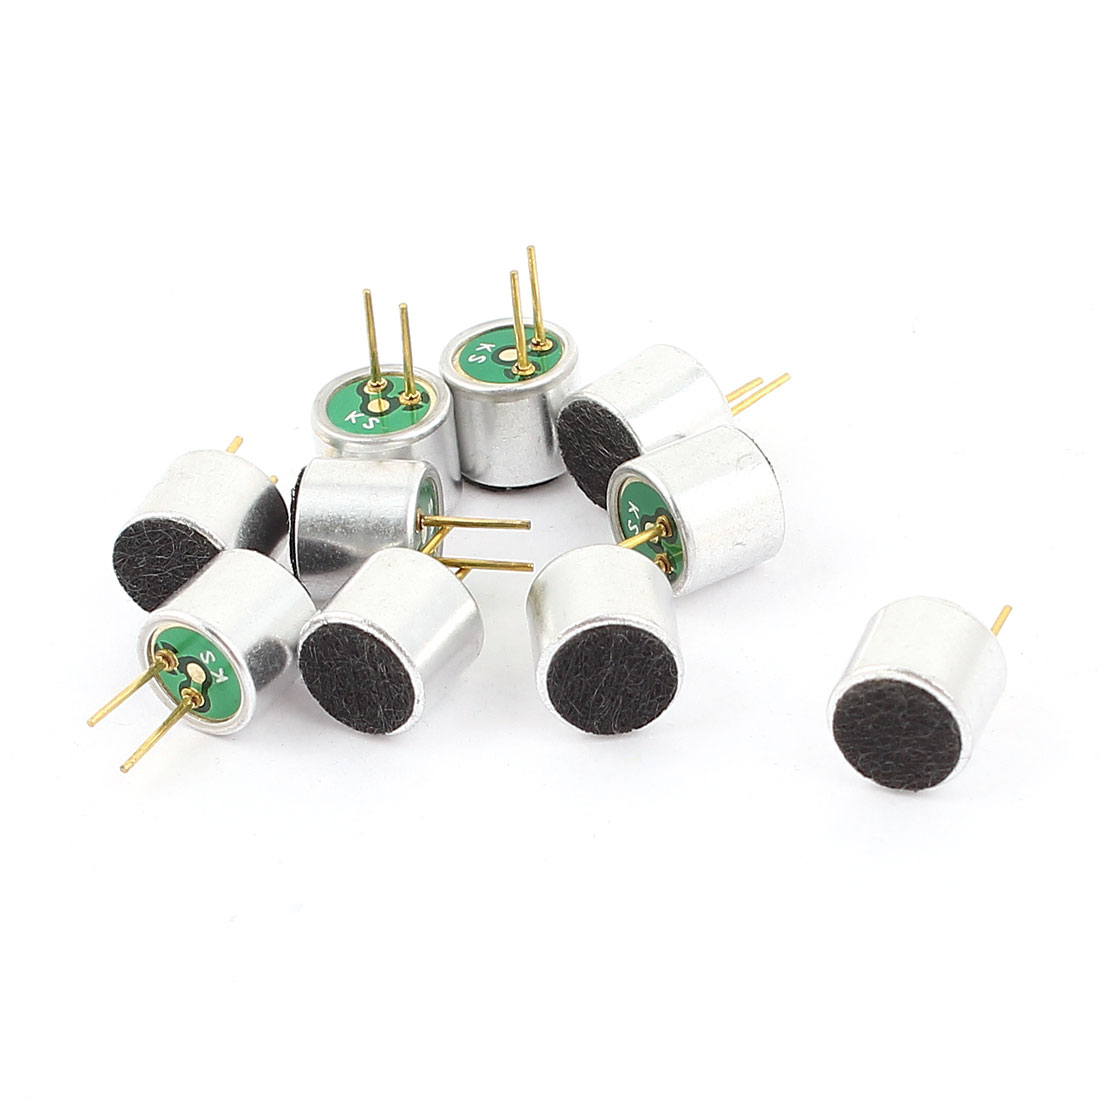 10 Pieces Cylinder Shaped 2Pin Electret Condenser Microphone MIC Pick-up 6mmx5mm by